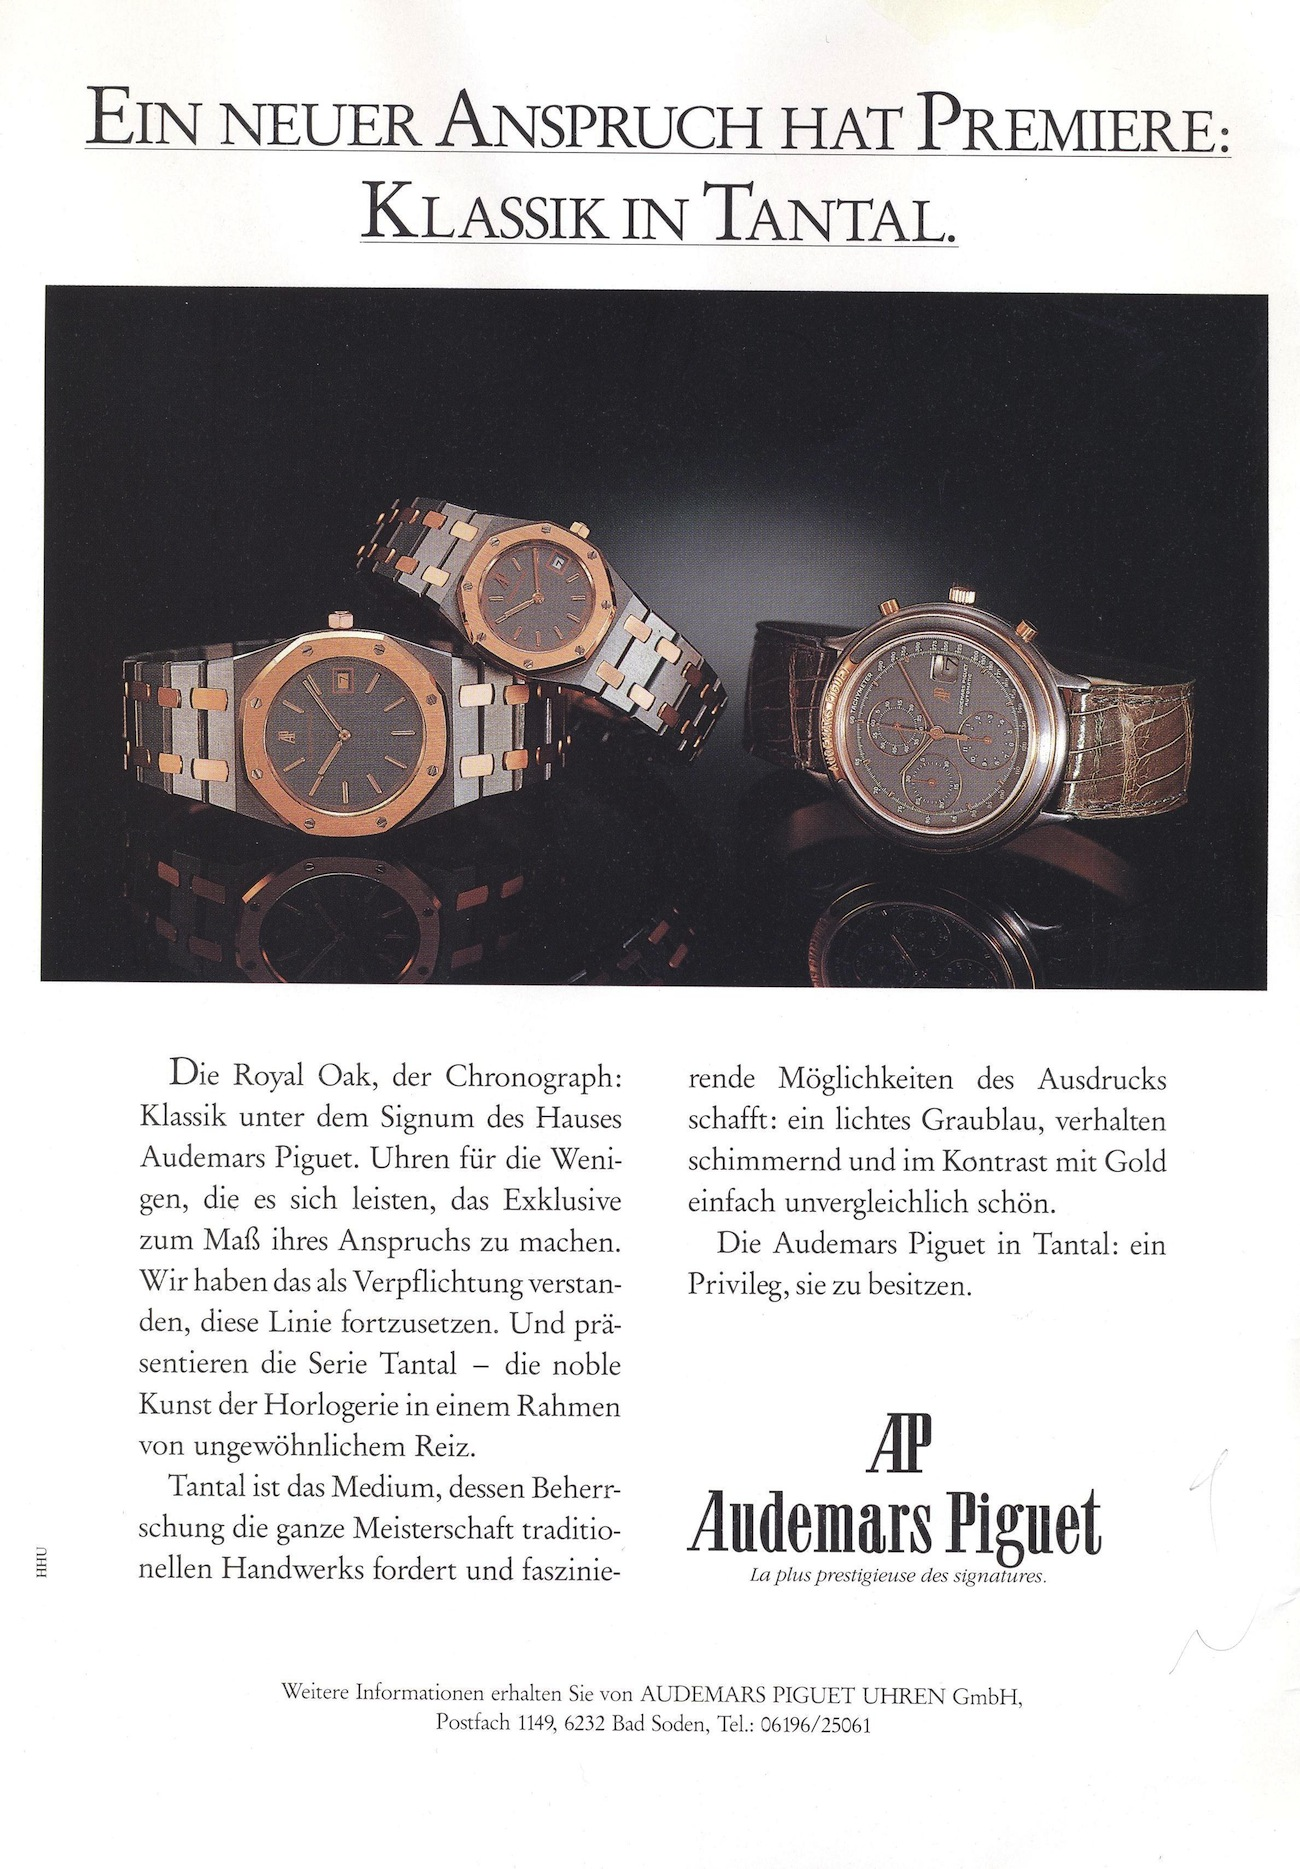 Royal Oak Advertisement circa 1989. Translation of Advertisement in German:  A New Entitlement has Premiered: Classic in Tantalum.    The Royal Oak, the chronograph watch: classic under the sign of the Audemars Piguet house. Watches for the few that can afford them and make the exclusive their standard requirement. We understood it was  our obligation to continue this line and present the tantalum series— the  noble art of watchmaking in a context of unusual attraction. Tantalum is the medium, whose control demands the mastering of  traditional craft and which provides fascinating possibilities of expression. Shimmering and resplendent in gray-blue with a contrast of gold that is simply unmatched and beautiful. The Audemars Piguet in  tantalum: a privilege to possess it.